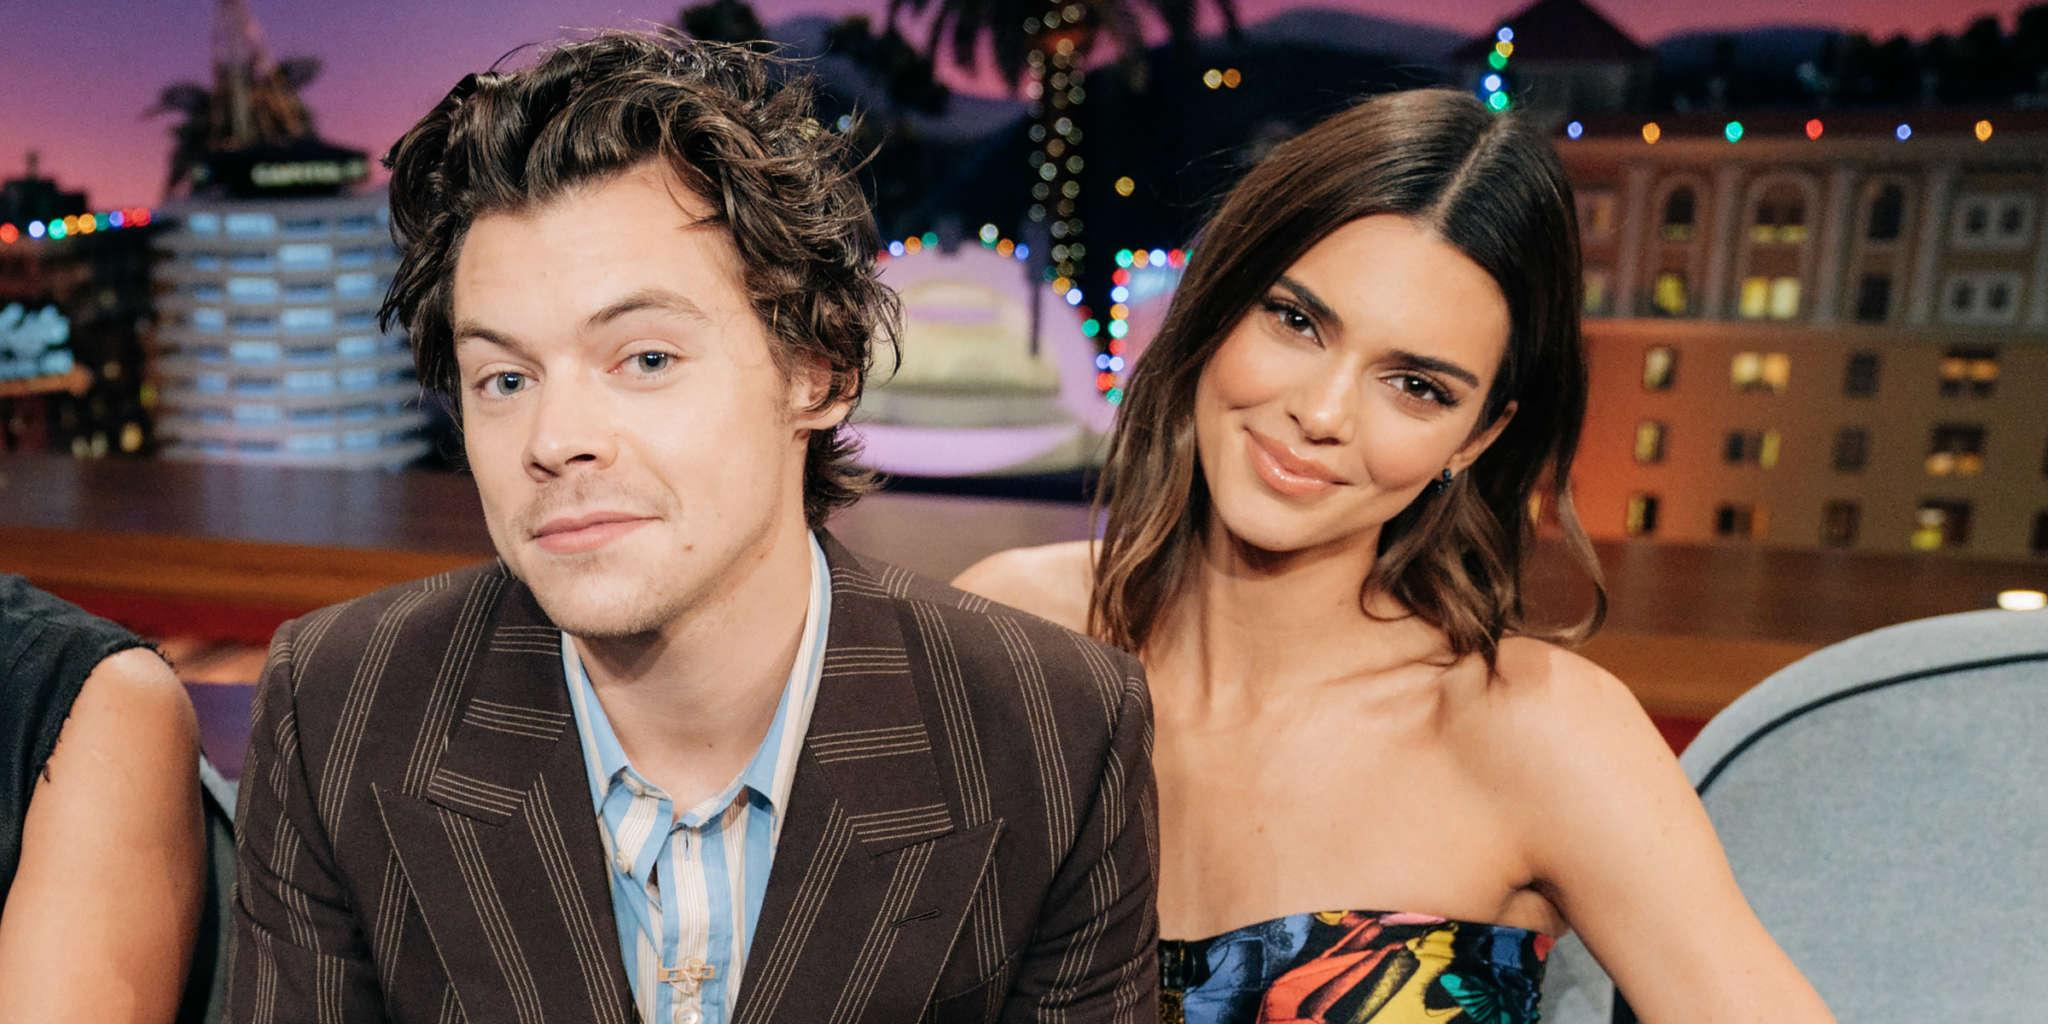 Harry Styles Gets Nervous During Awkward Ellen DeGeneres Discussion About His Ex Kendall Jenner